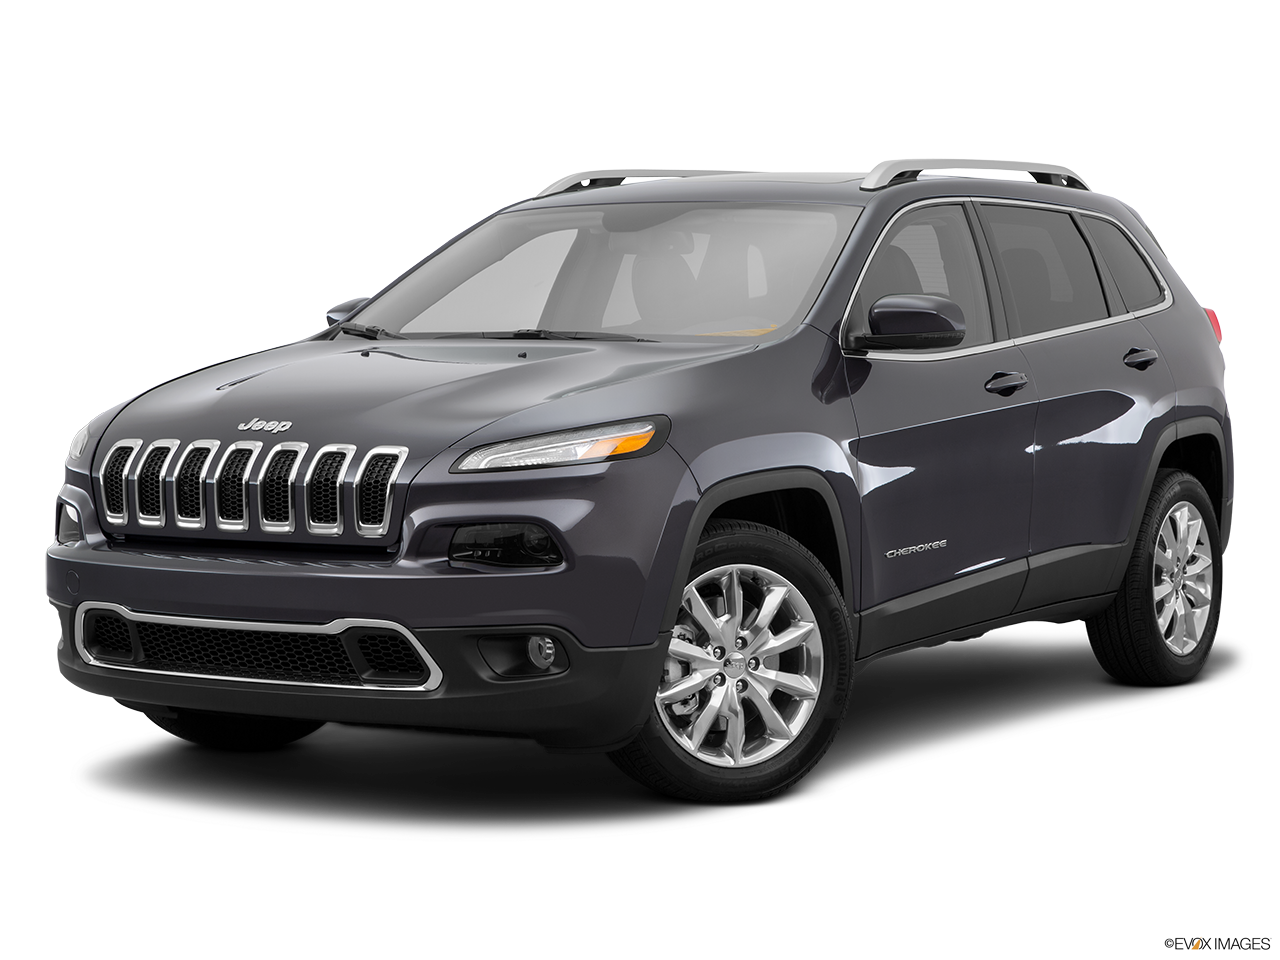 Test Drive A 2015 Jeep Cherokee at Huntington Beach Chrysler Dodge Jeep Ram in Huntington Beach